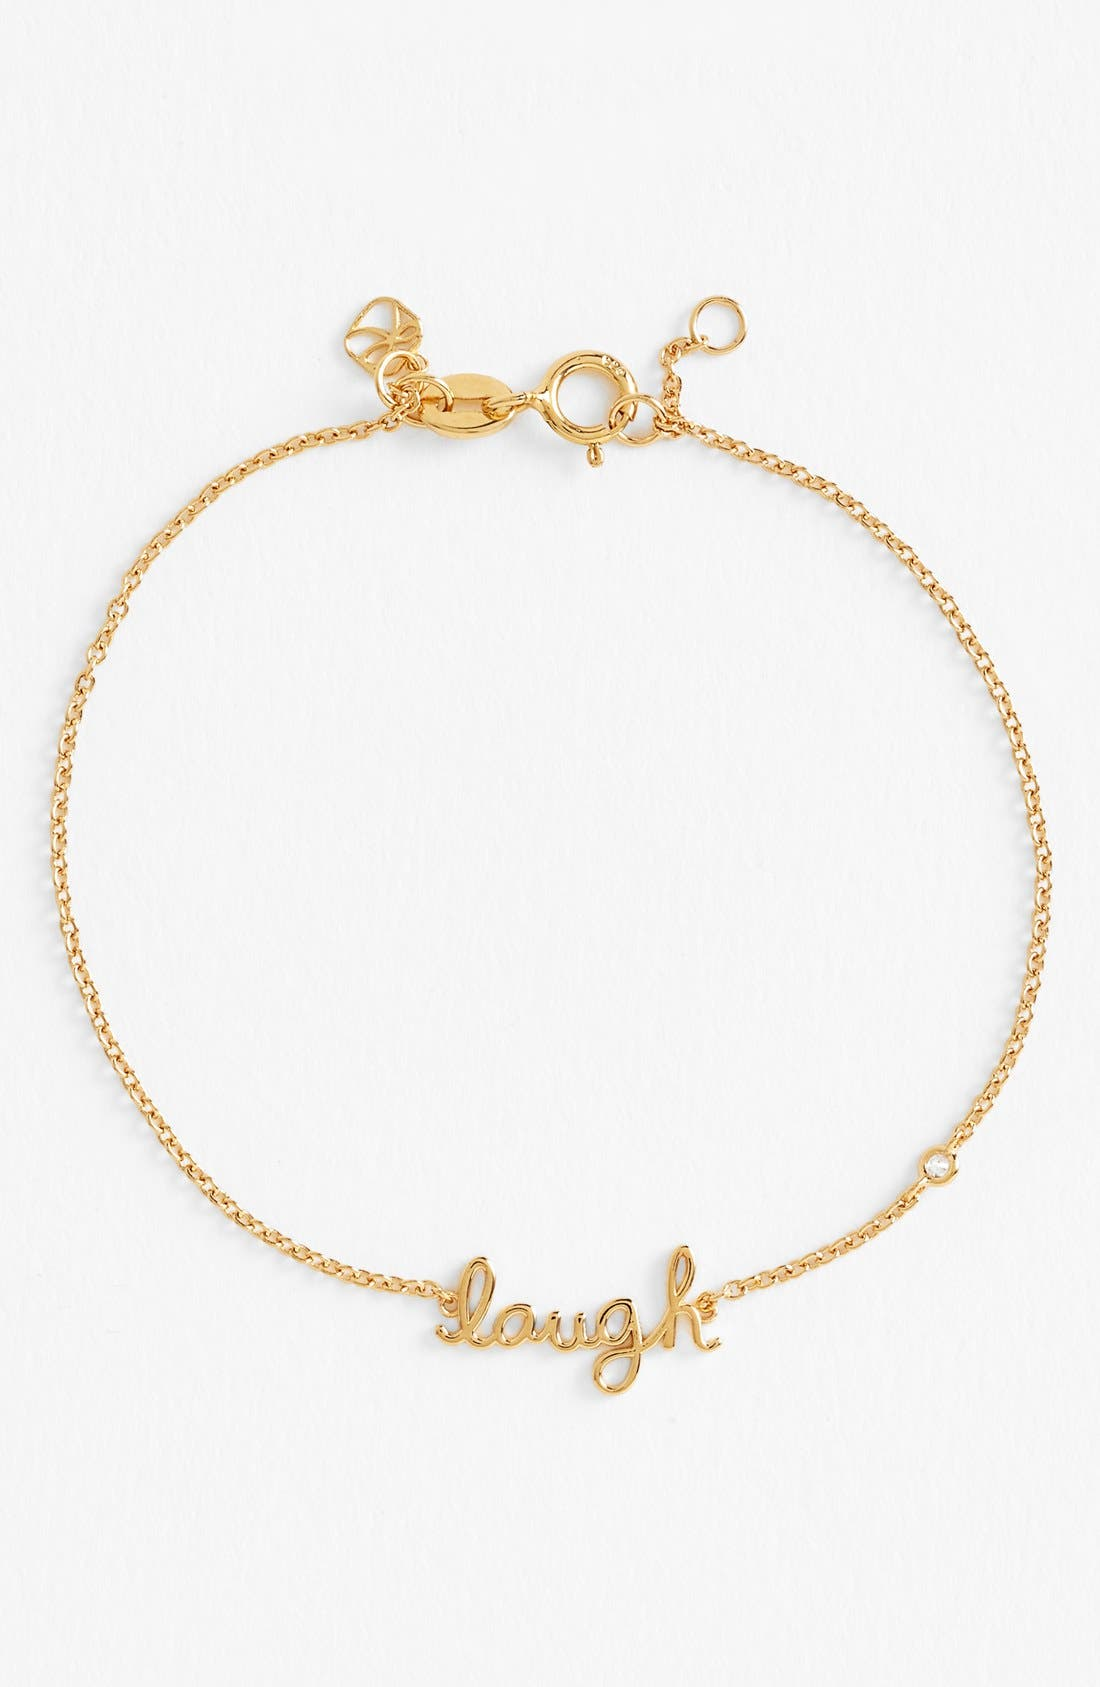 Alternate Image 1 Selected - SHY by Sydney Evan 'Laugh' Bracelet